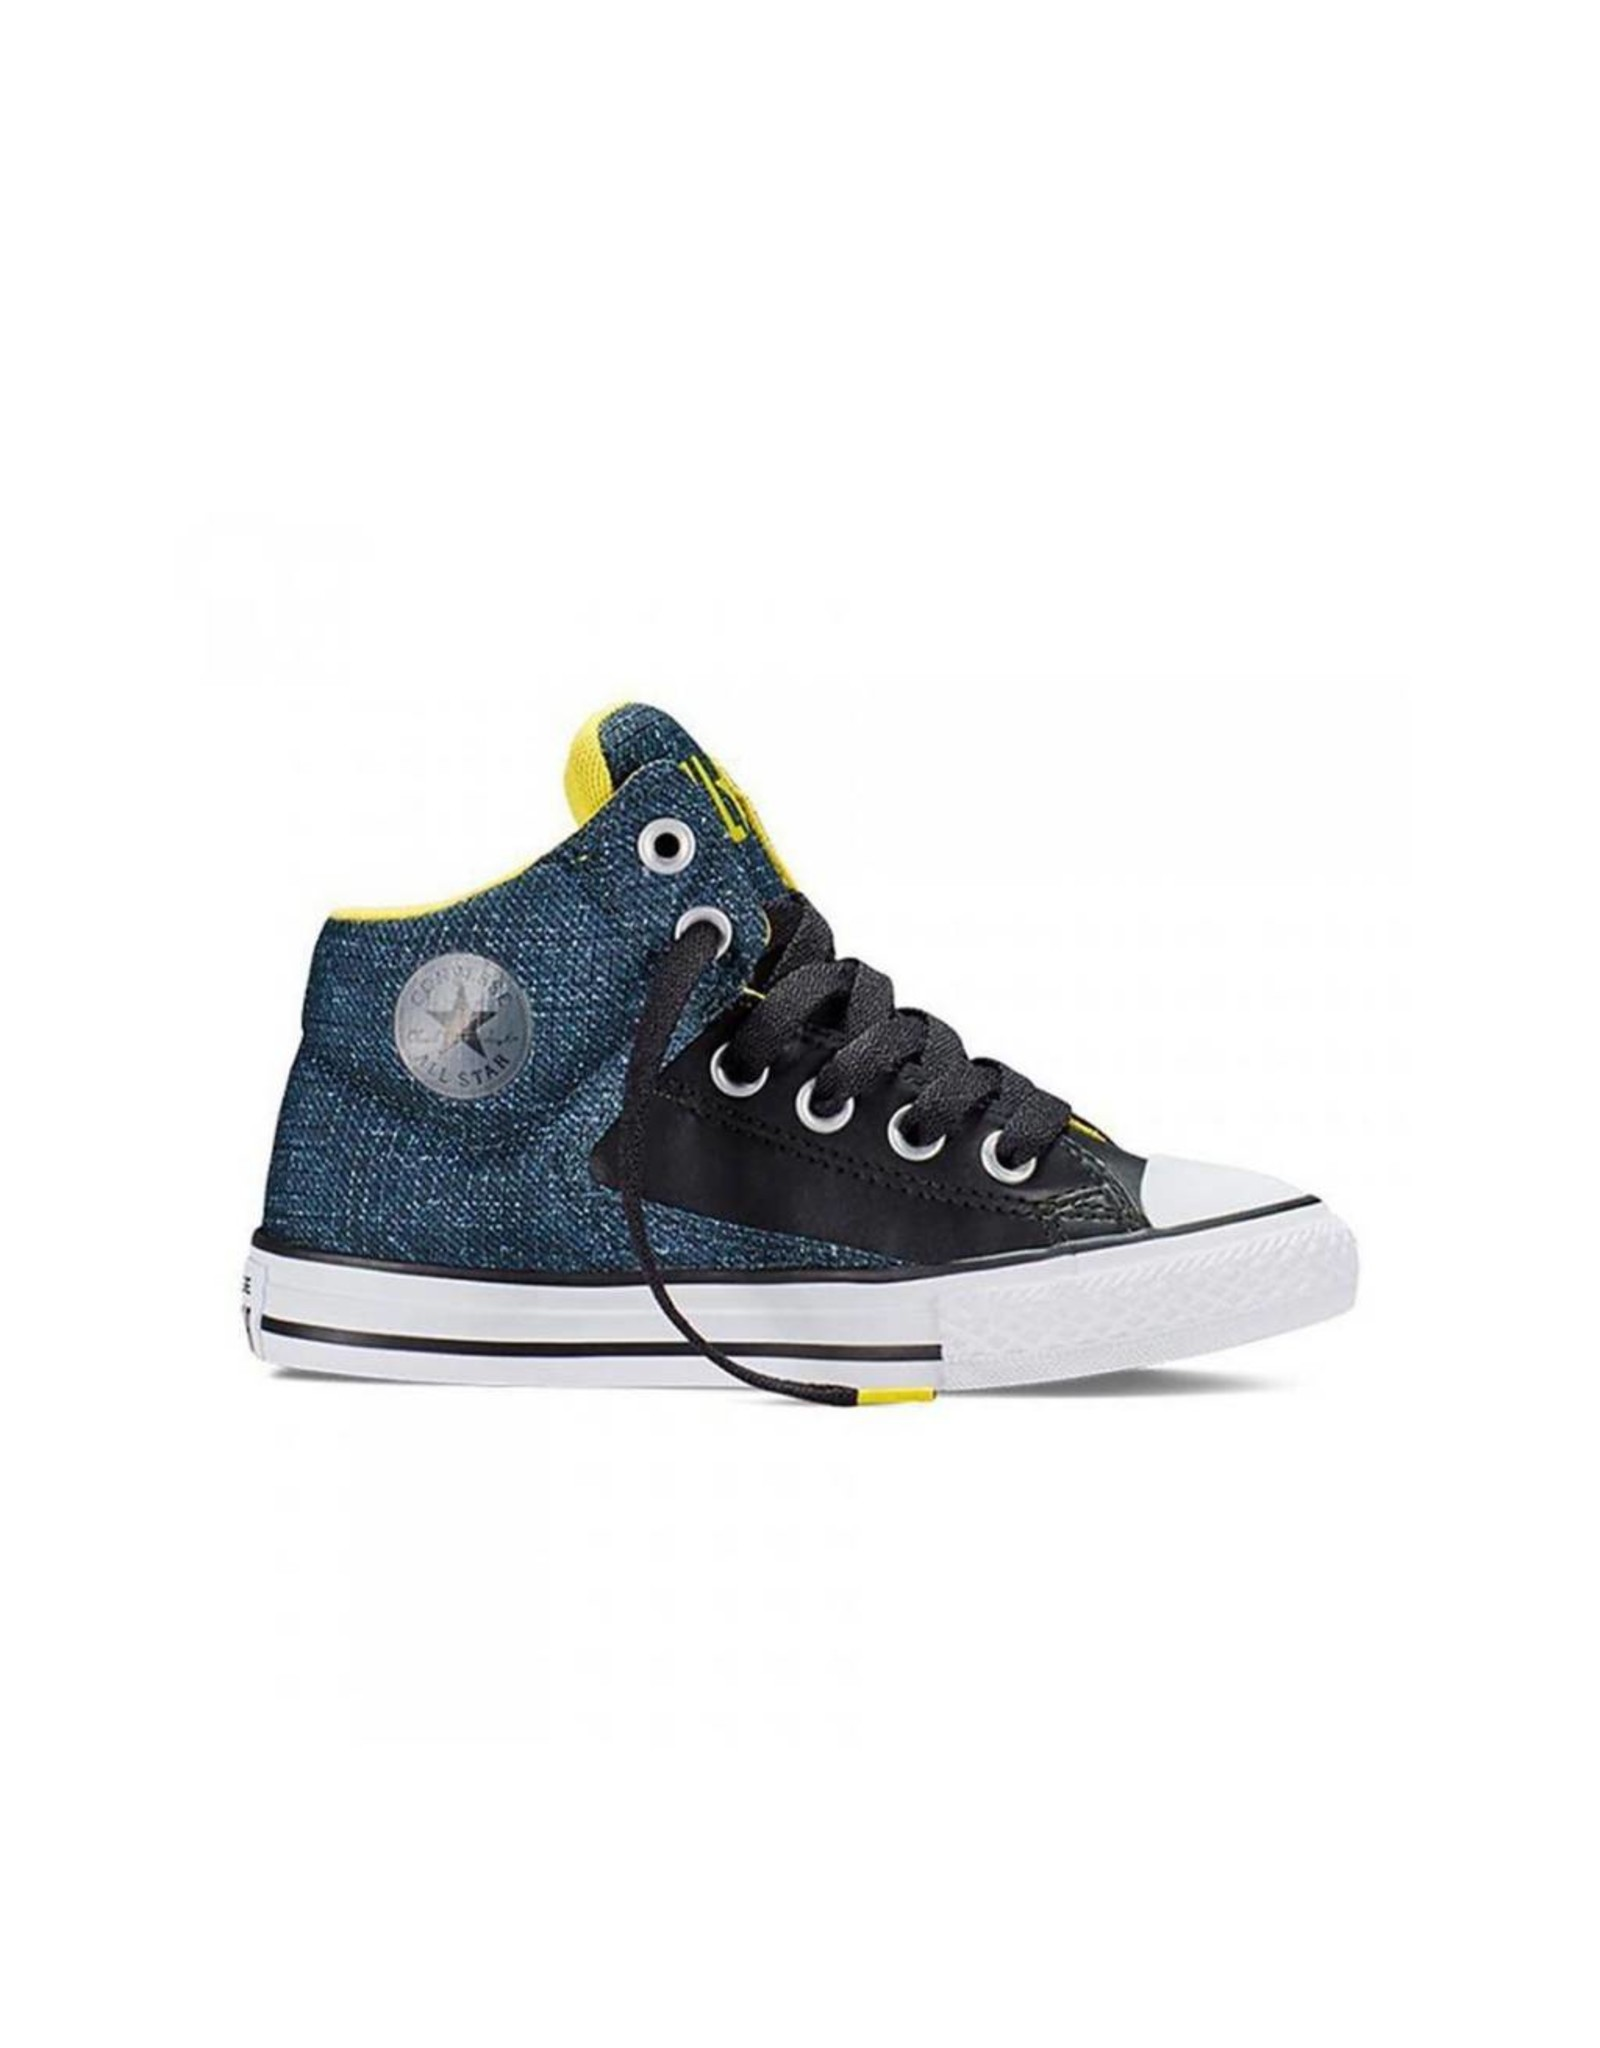 CONVERSE CHUCK TAYLOR ALL STAR HIGH STREET HI BLACK YELLOW CVHSWH-651785C